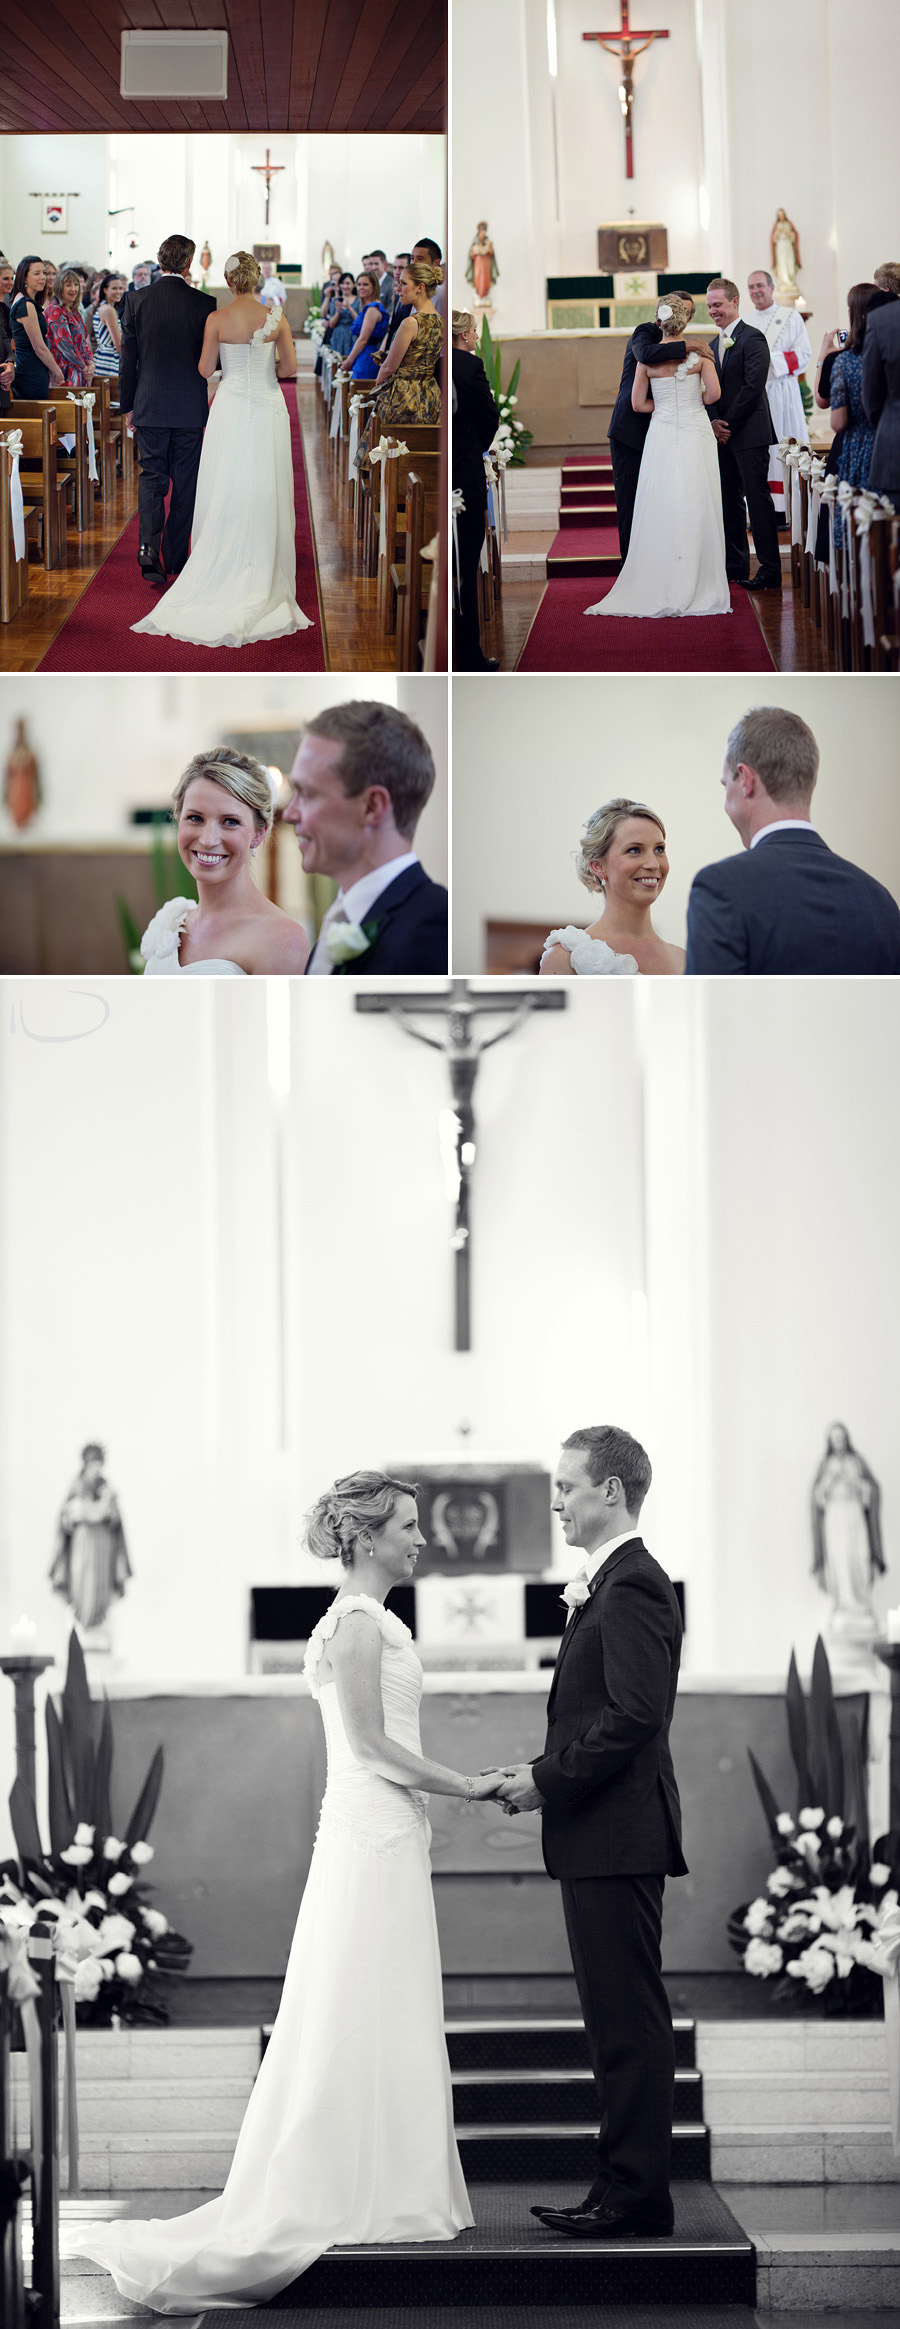 Duntroon Chapel Wedding Photographer: Ceremony